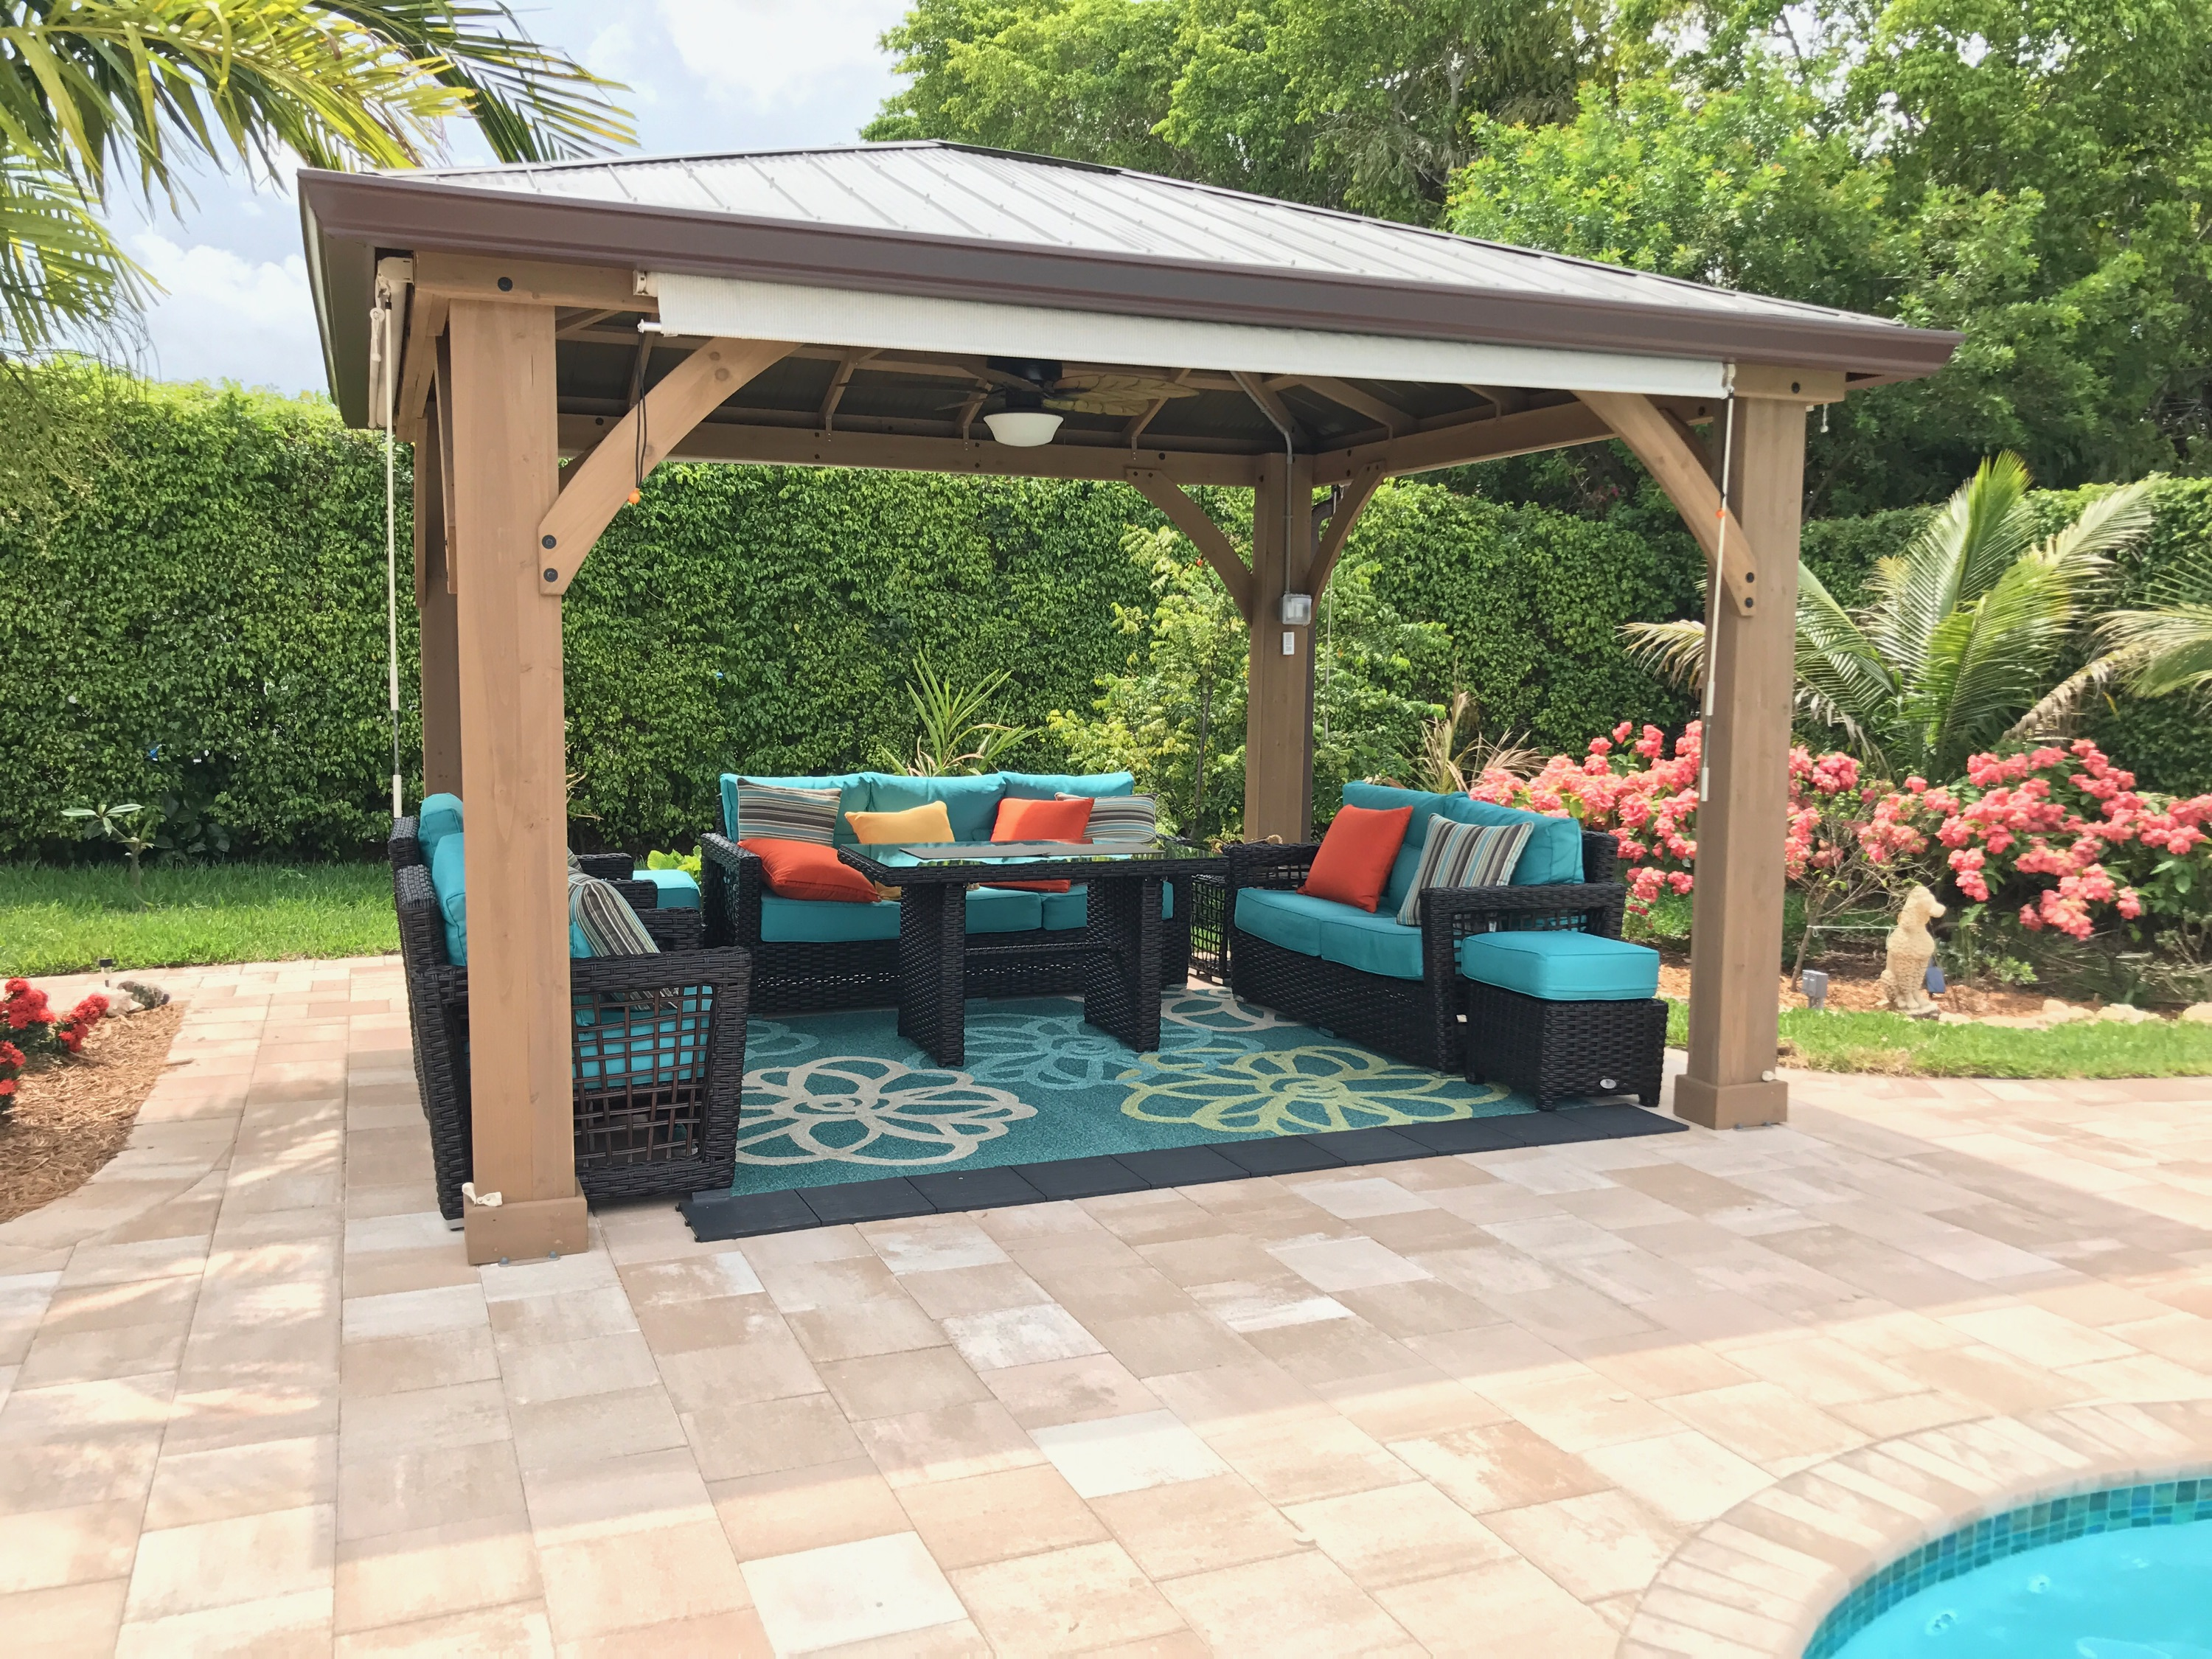 Garden furniture for outdoor patios Trading post for outdoor patios |  Wicker garden furniture for outdoors WOPODDN